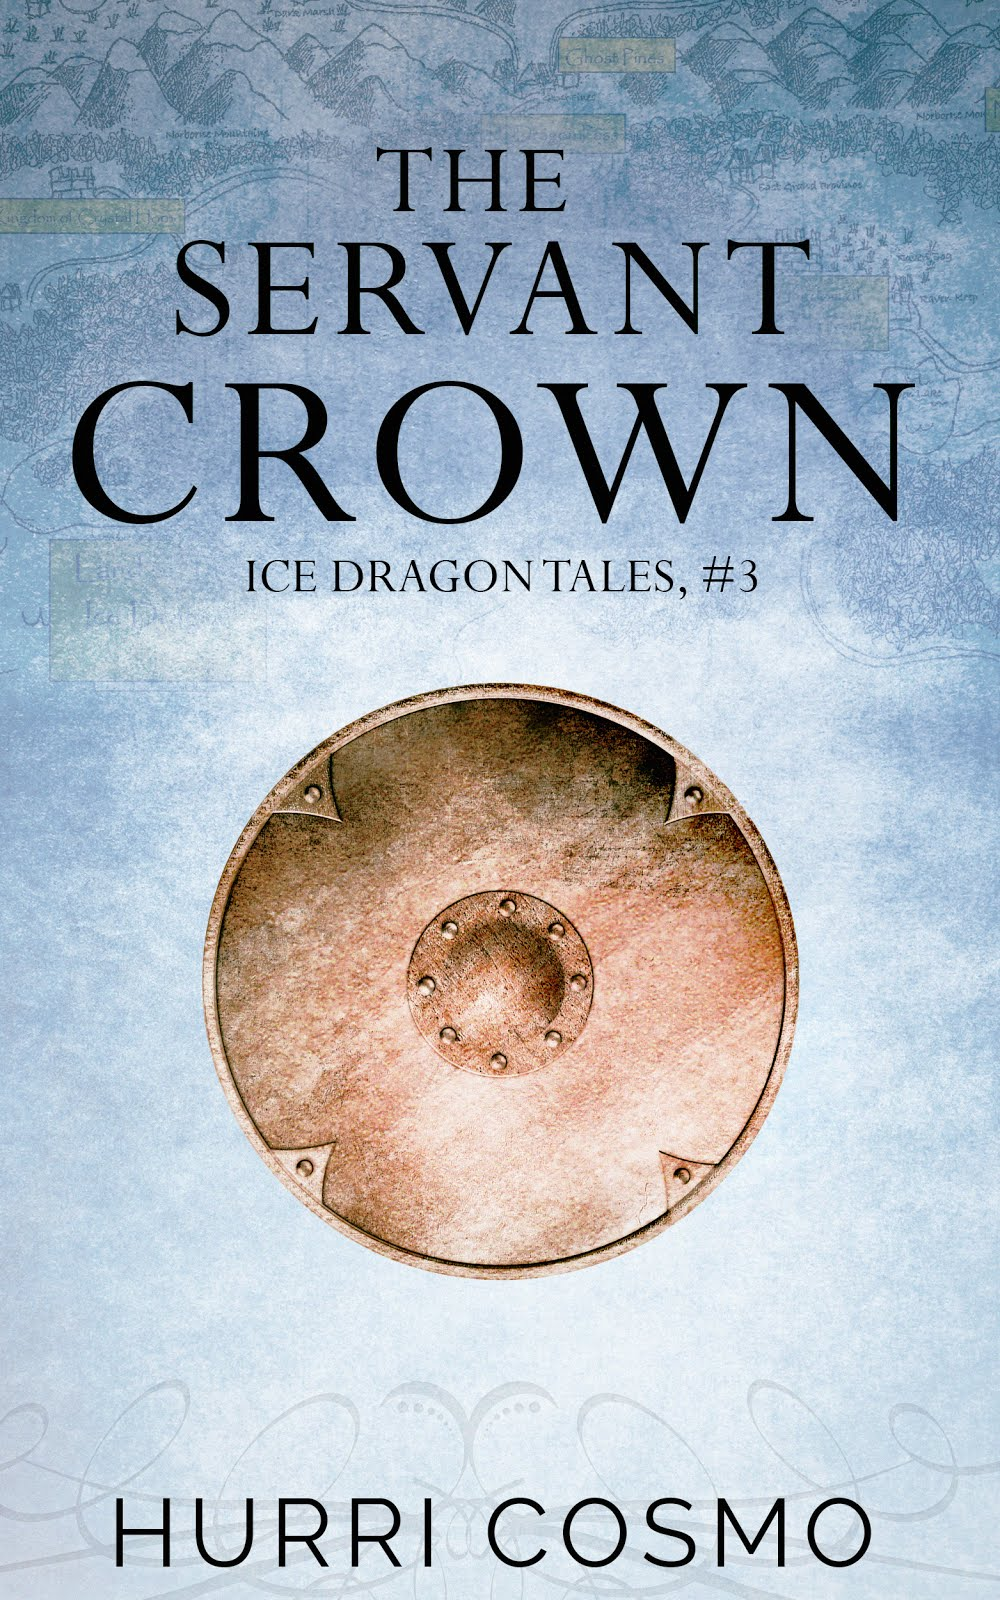 The Servant Crown